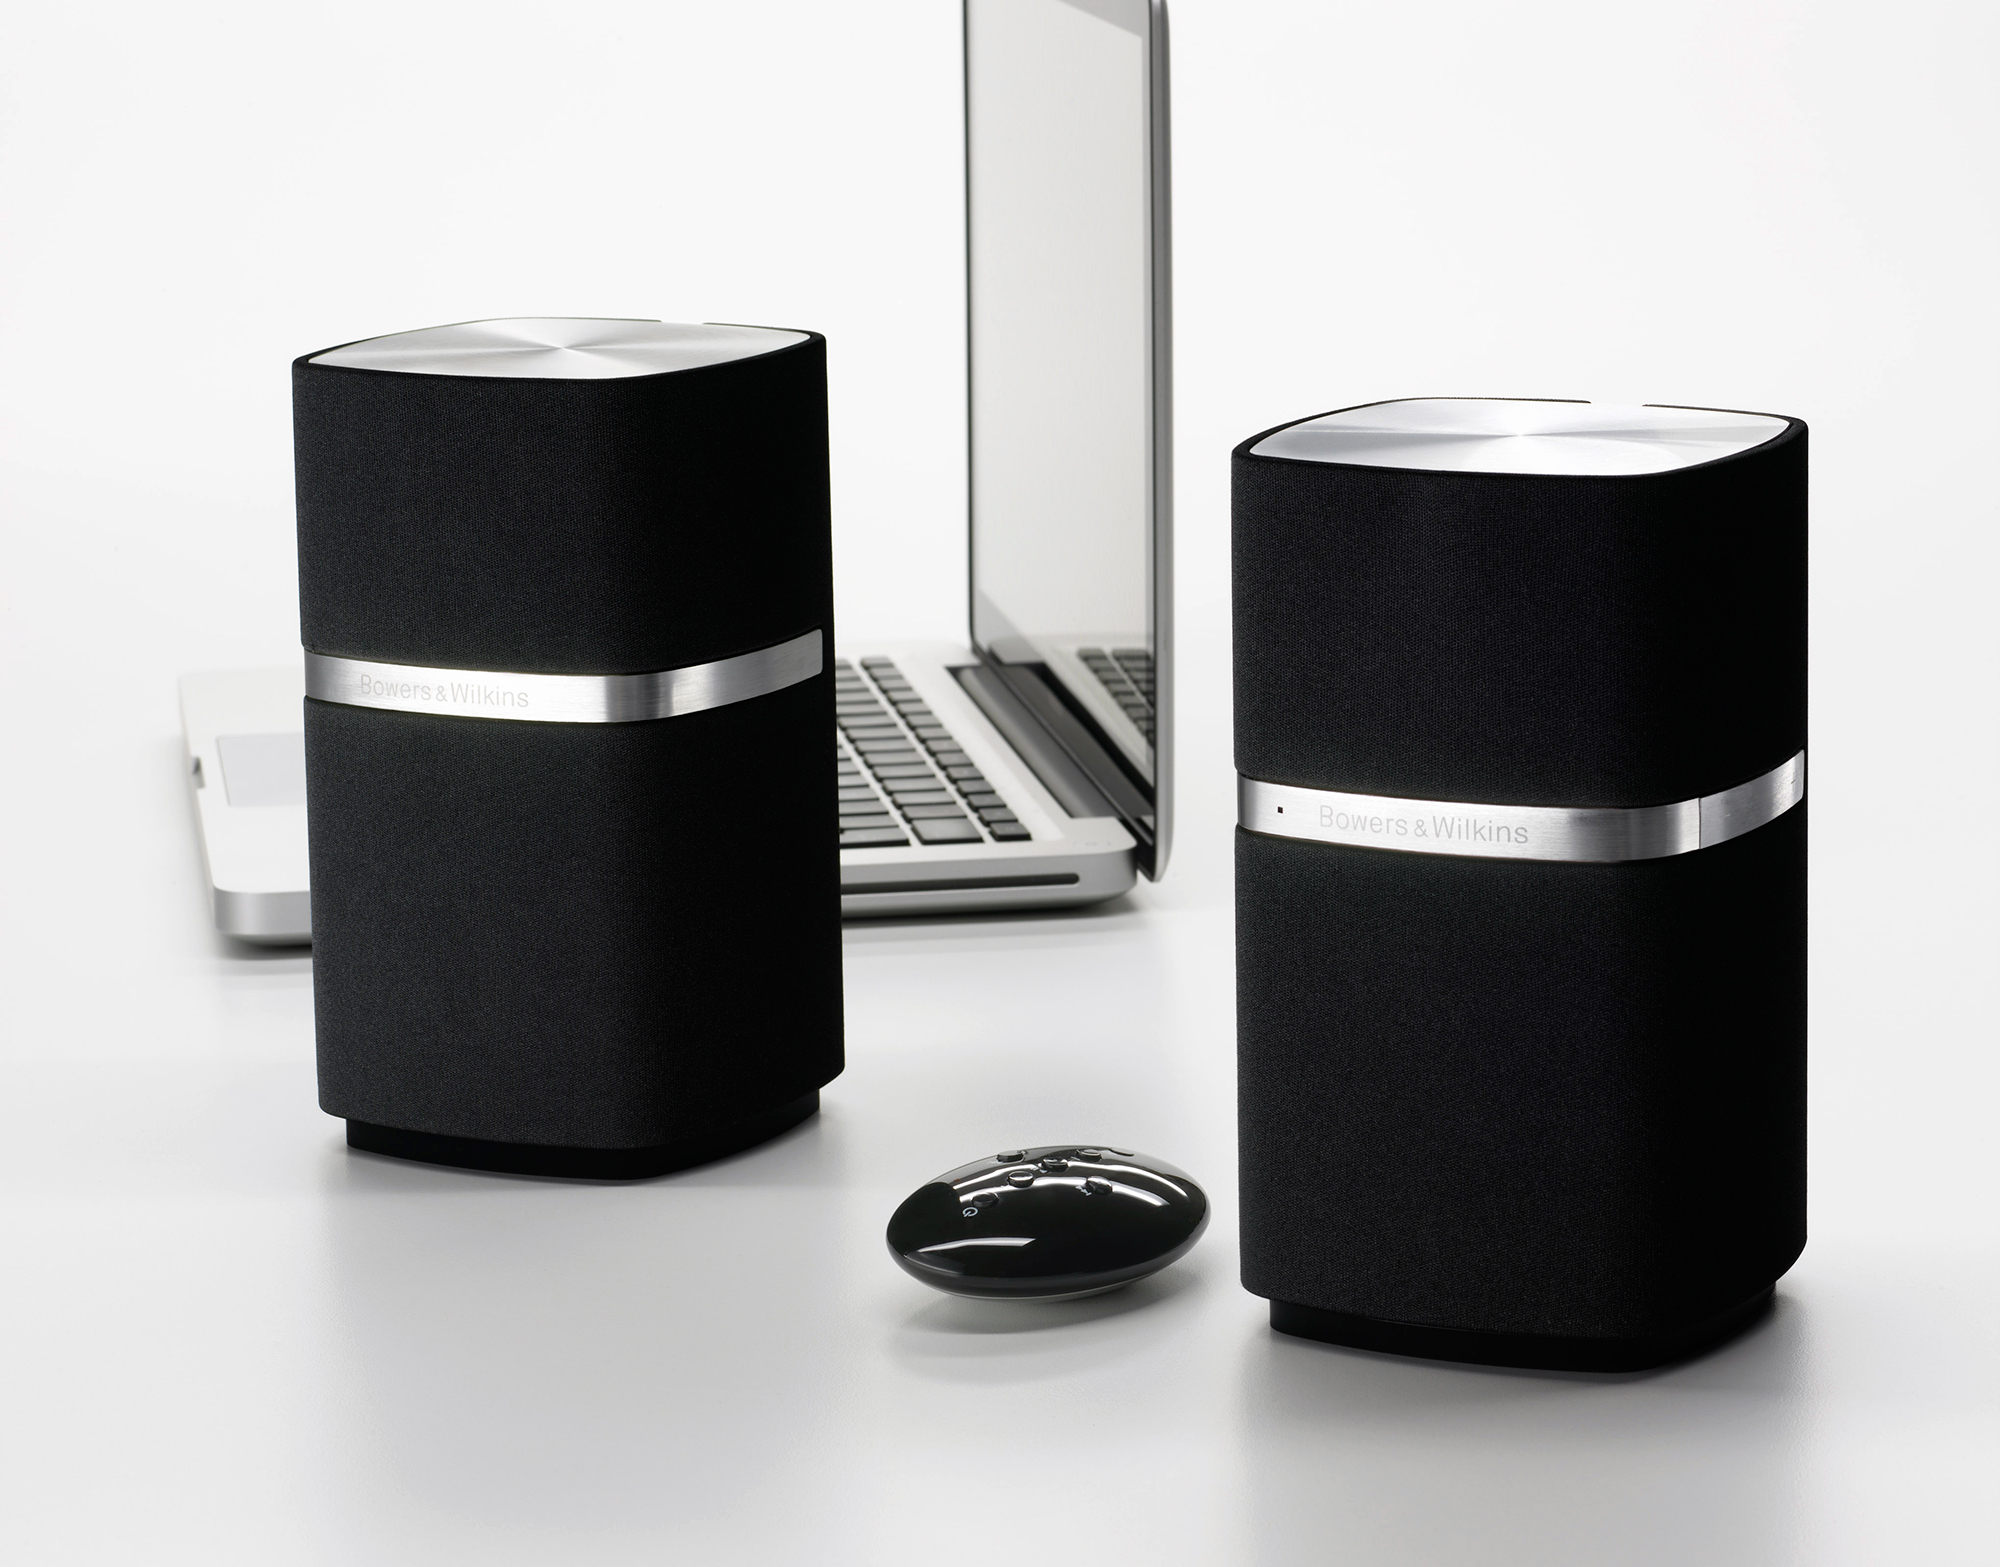 Bowers & Wilkins - MM1